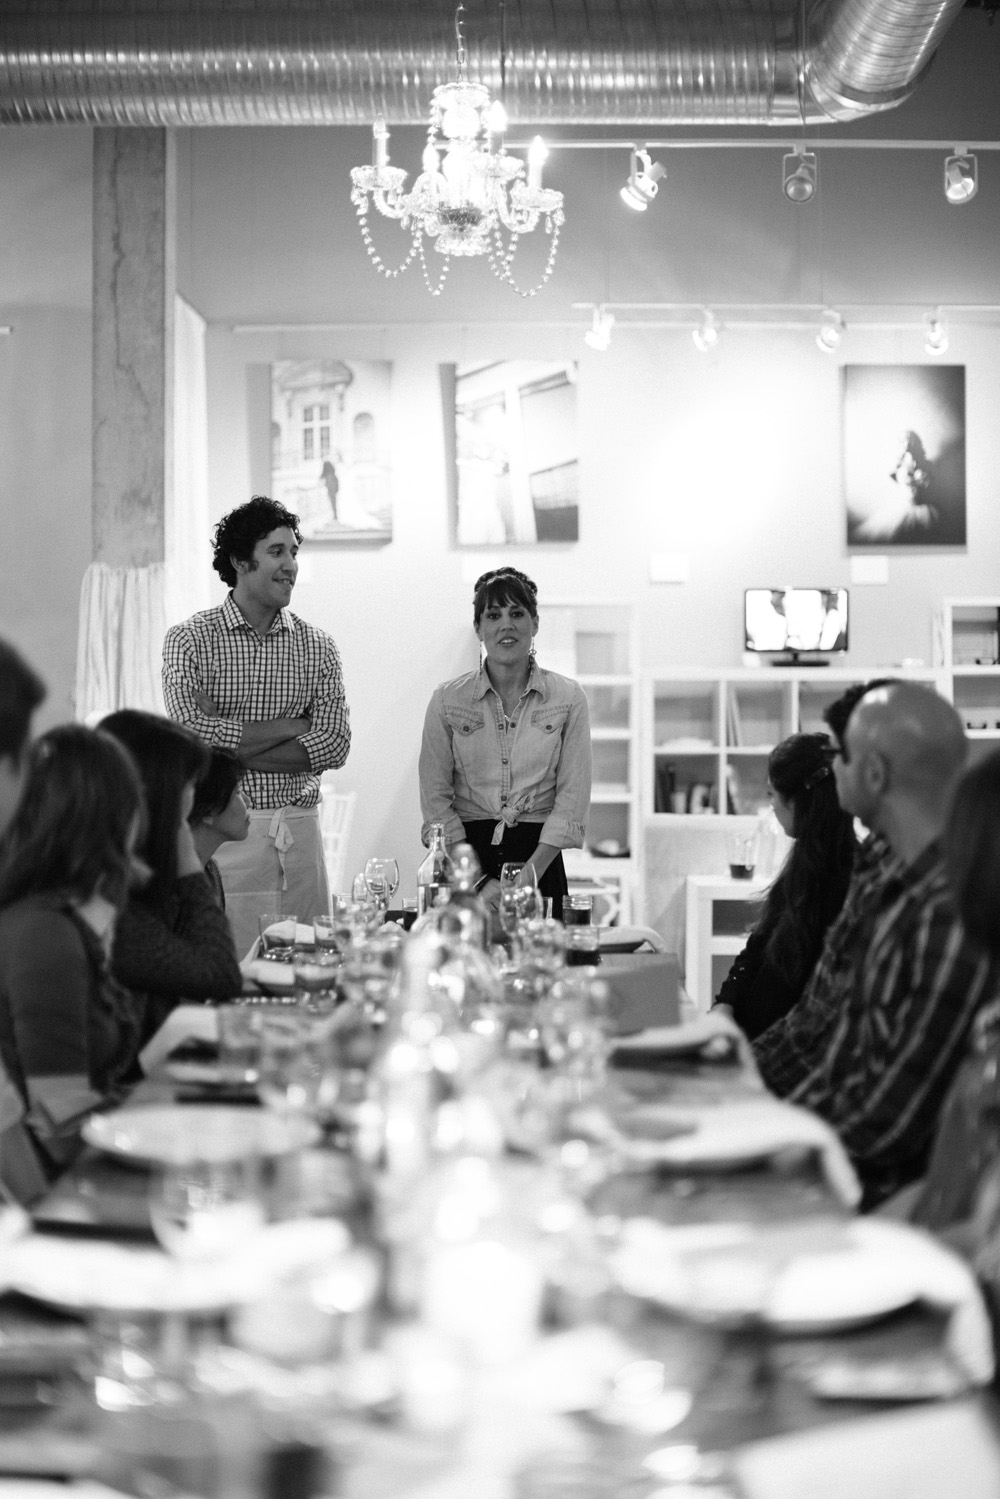 Homespun ATL Dinner Feb 2013Atlanta, GA Photography by Morgan Blake_Low Res062.jpg